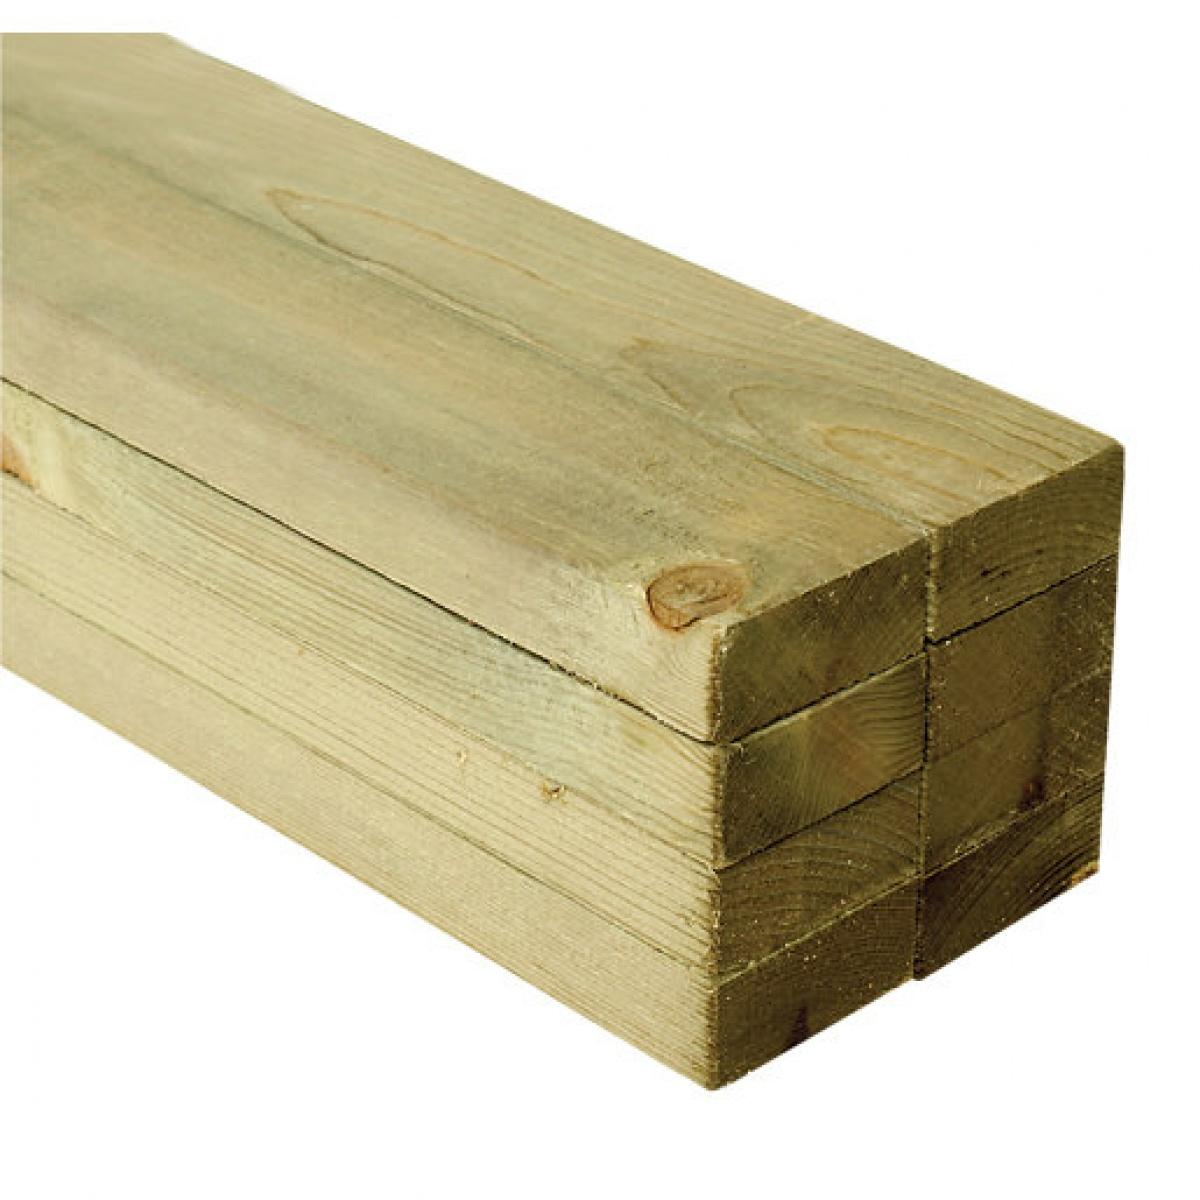 50mm x 100mm - [4x2] Ungraded Treated Rough Sawn - Nottage Timber Merchants